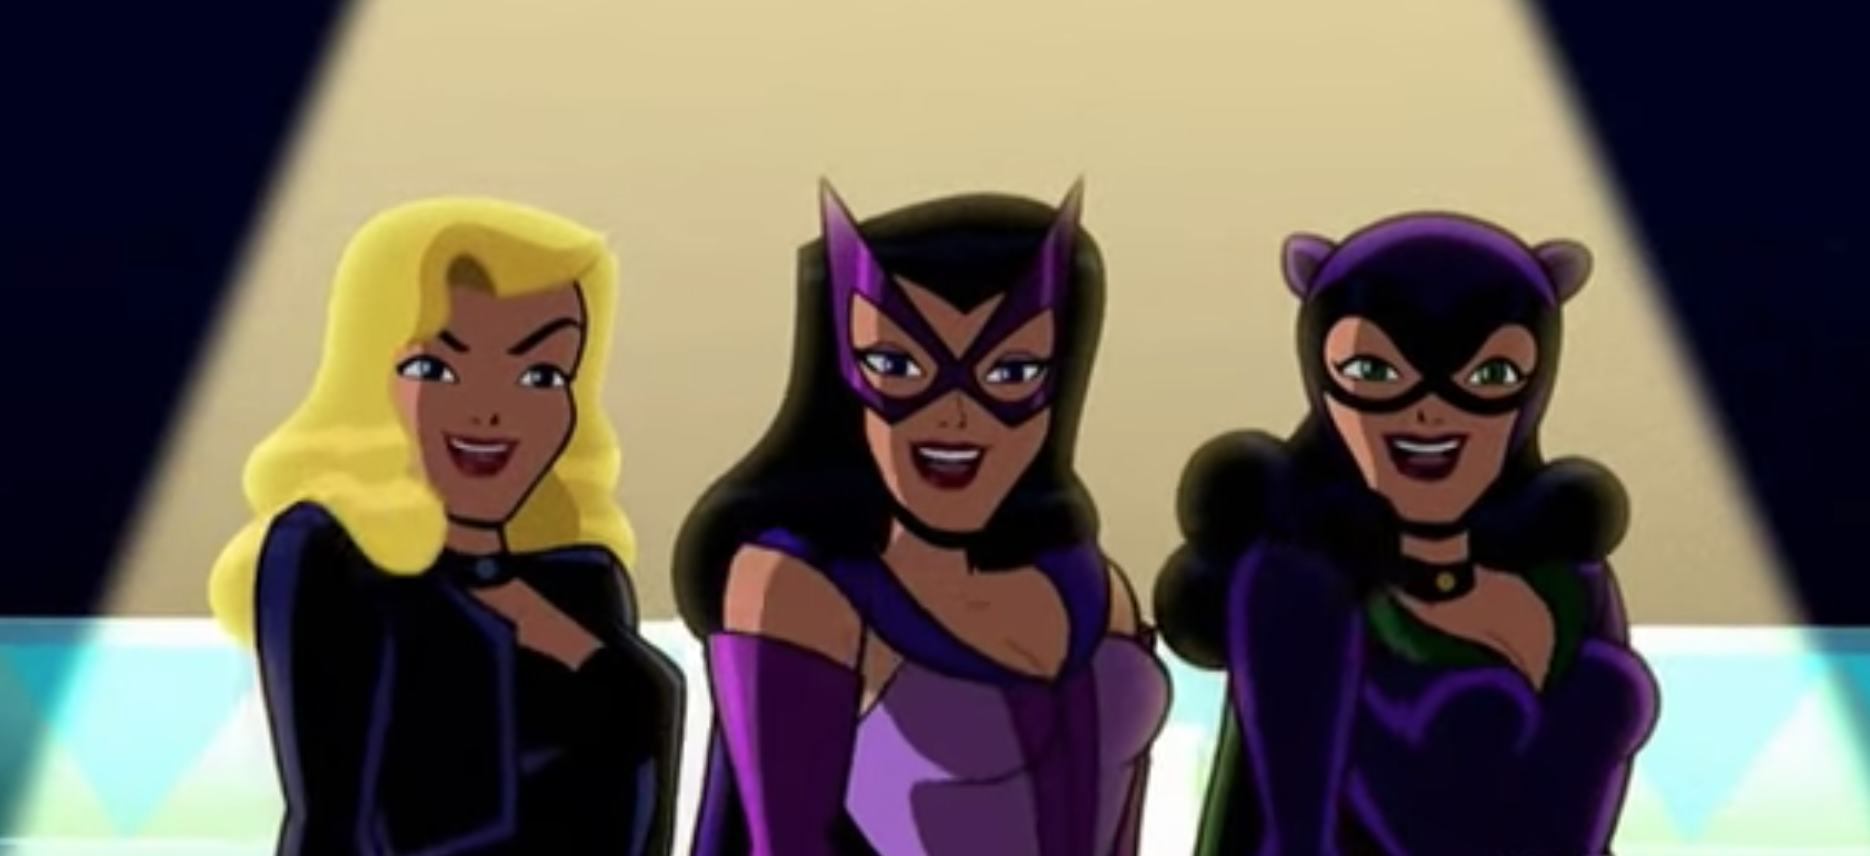 Stuff We Love: The lyrics in Batman: The Brave and the Bold's 'Birds of Prey' are naughty fun